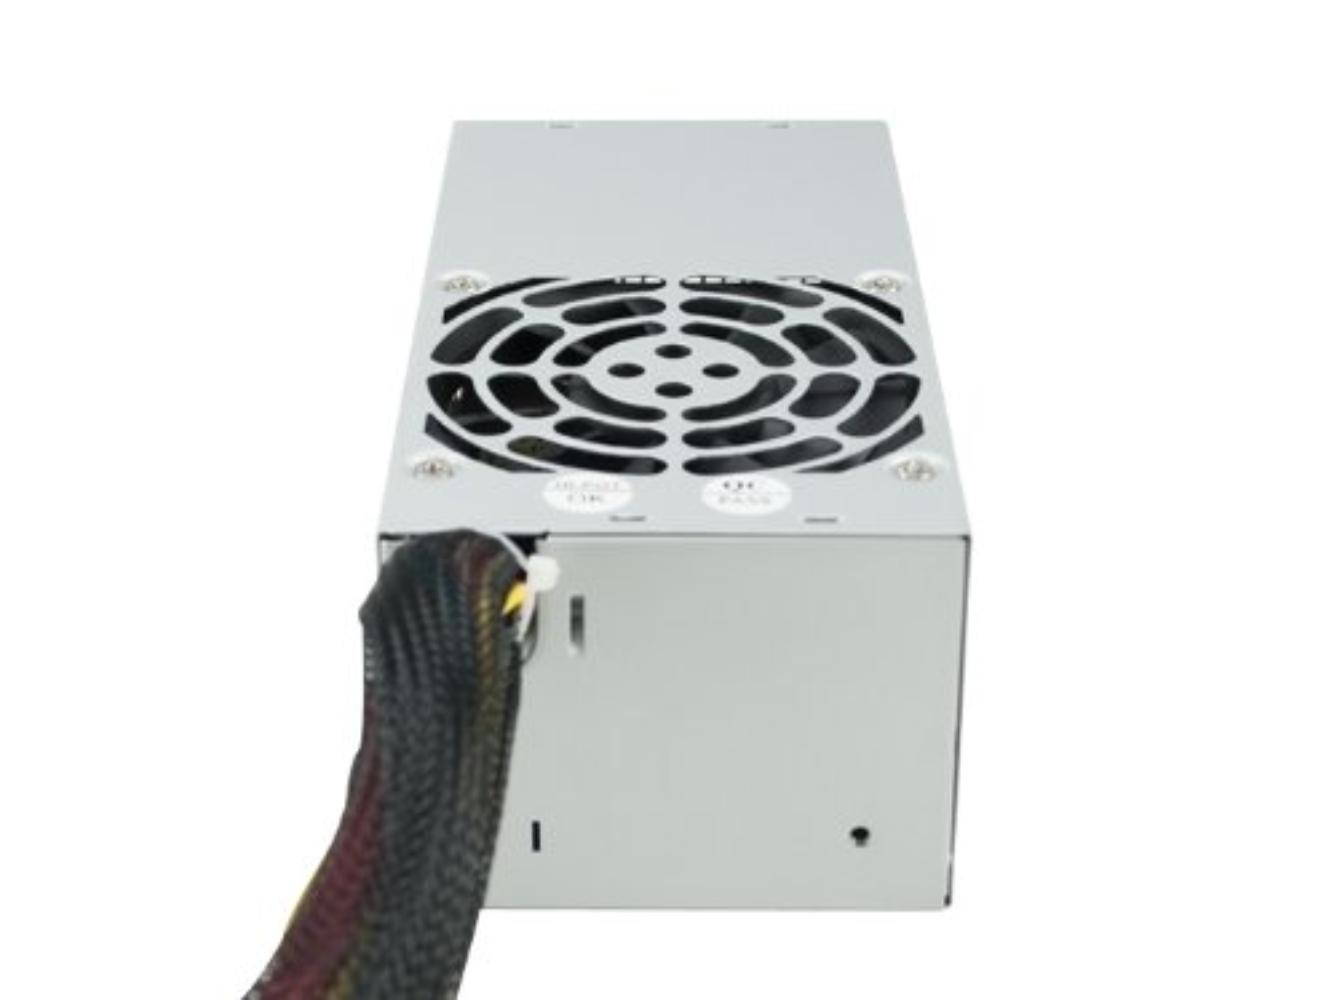 New PC Power Supply Upgrade for HP Pavilion s5100z Slimline SFF Computer